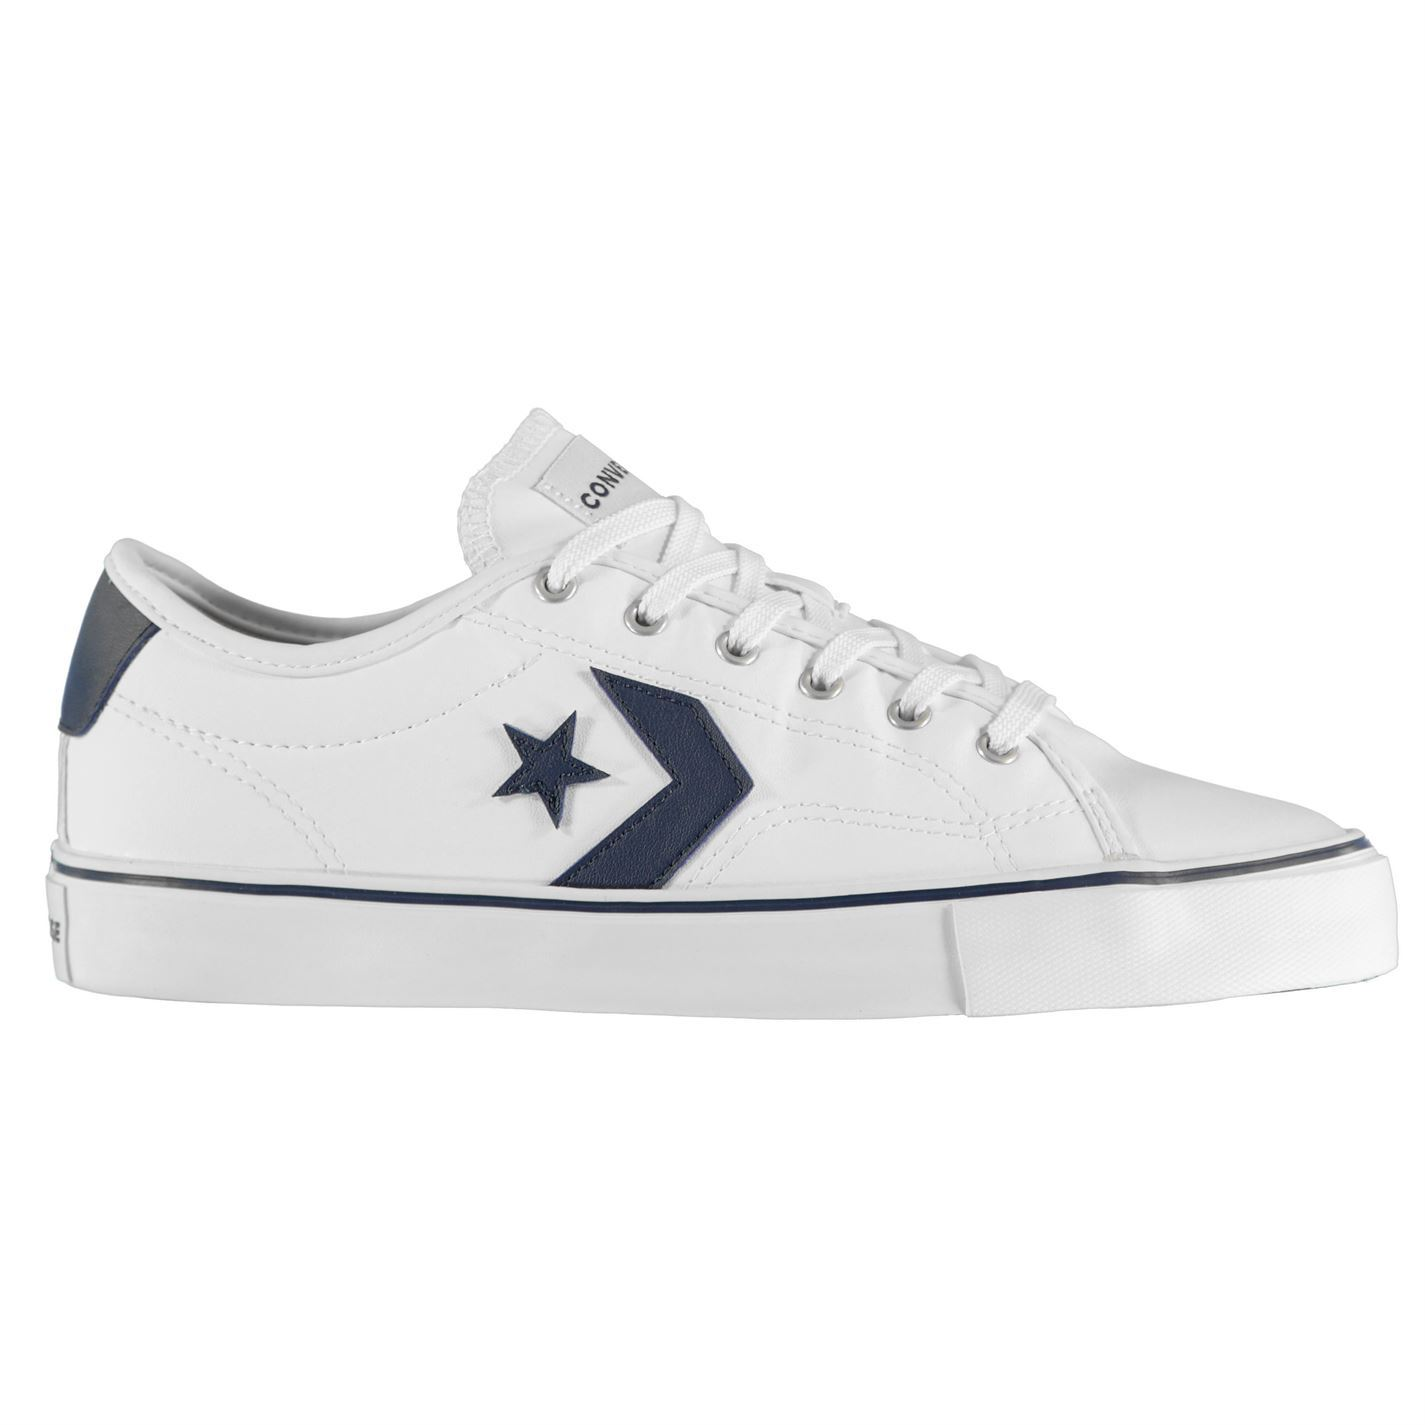 Converse-Ox-Replay-Low-Baskets-Pour-Homme-Chaussures-De-Loisirs-Chaussures-Baskets miniature 13